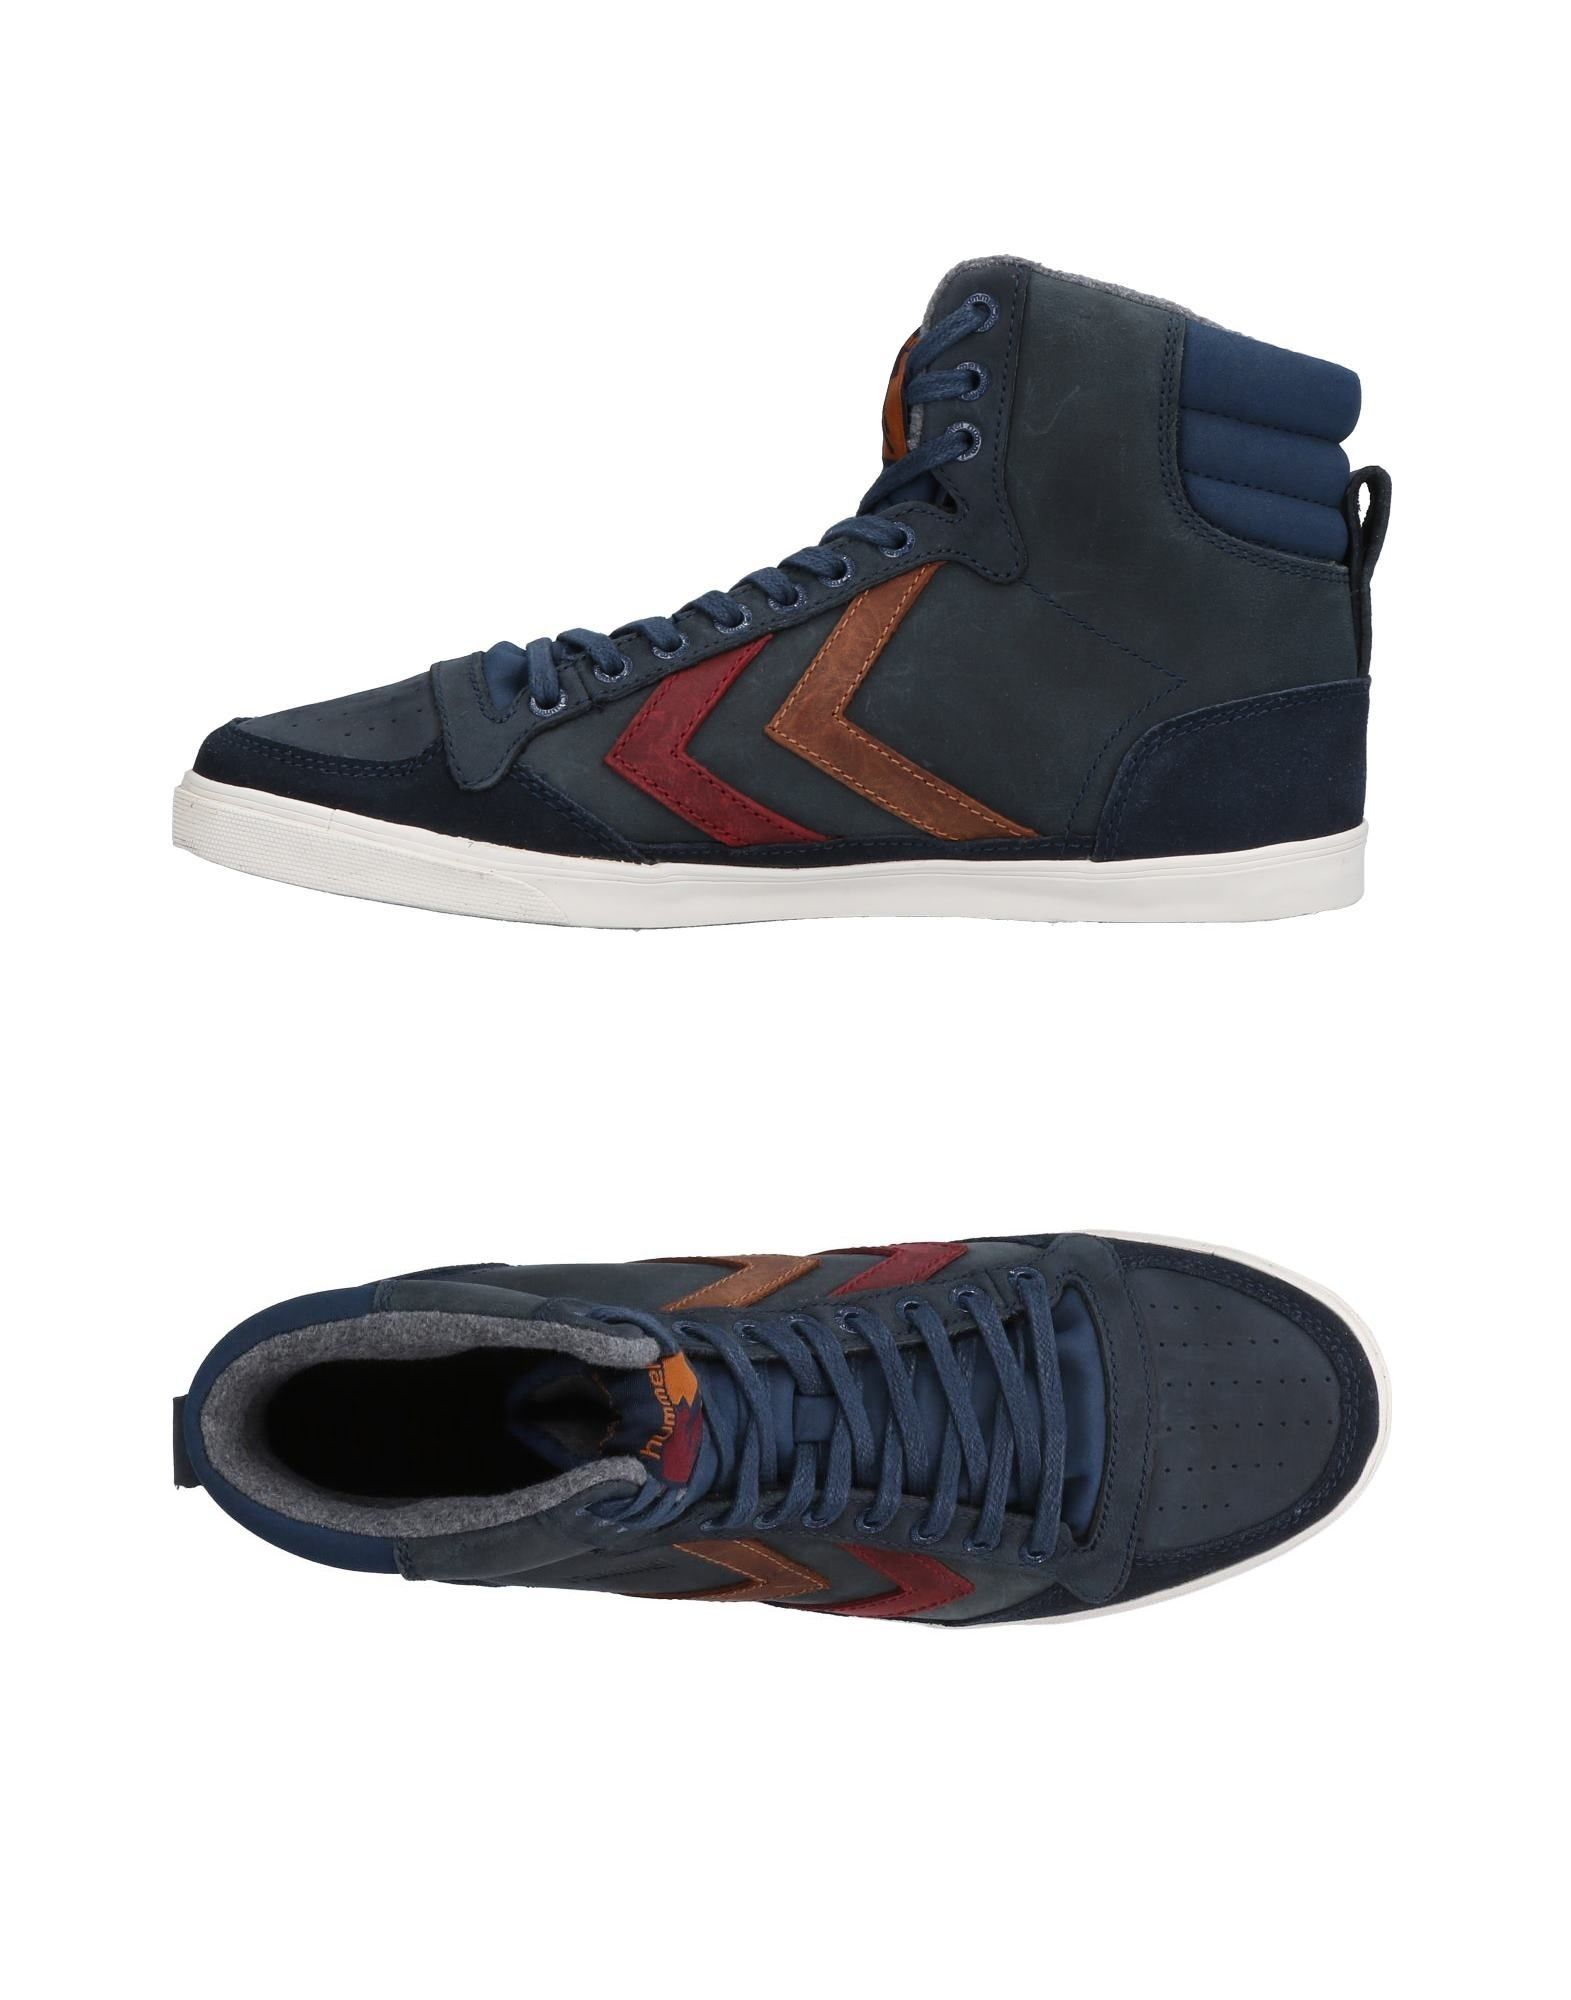 HUMMEL | HUMMEL High-tops & sneakers | Goxip